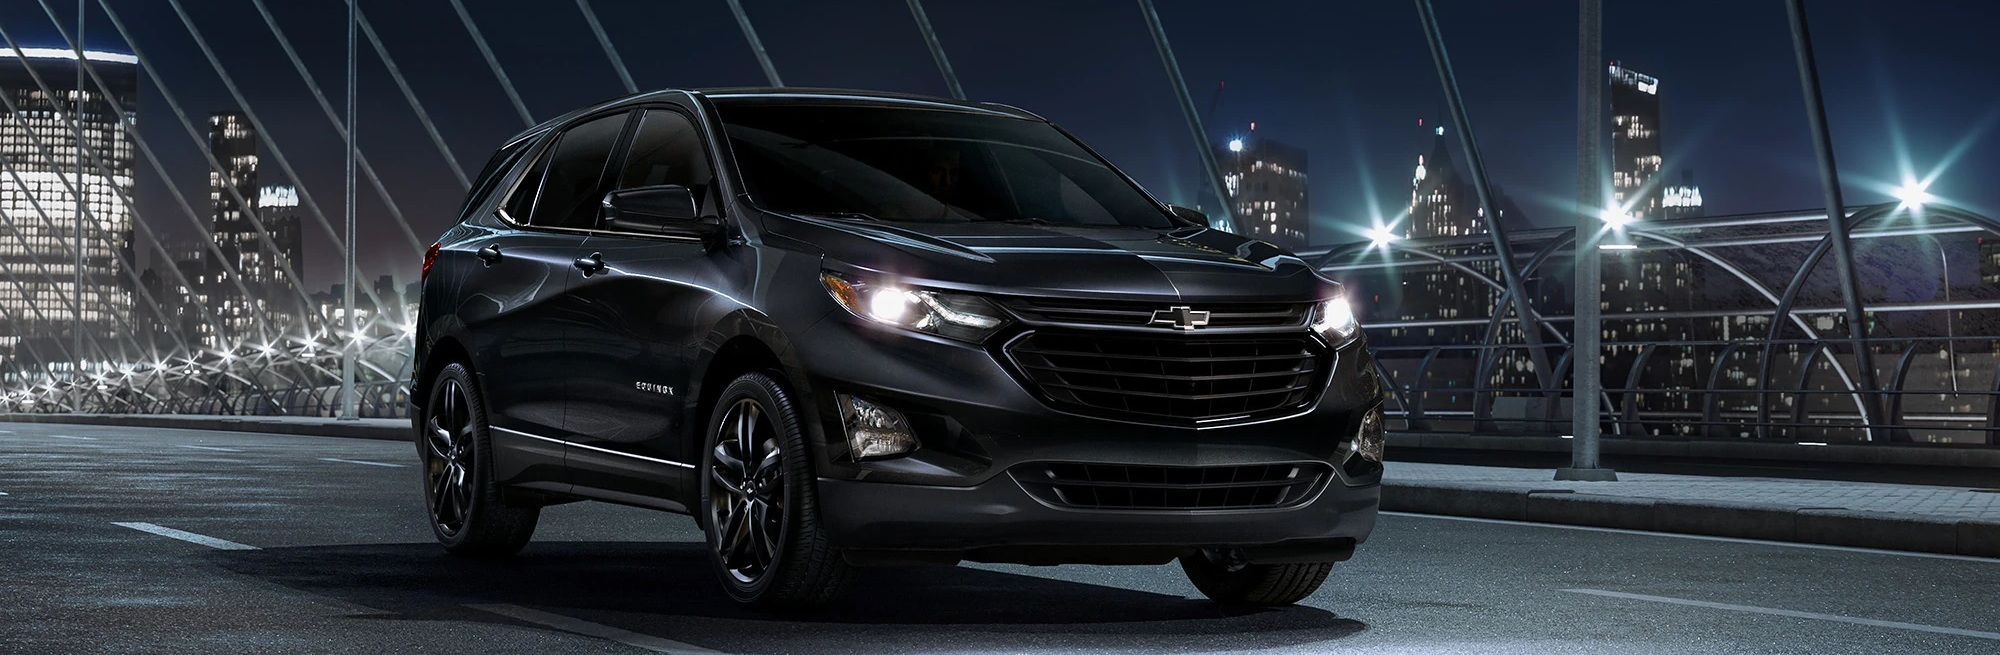 Used Chevrolet Equinox for Sale near Rochester, NY